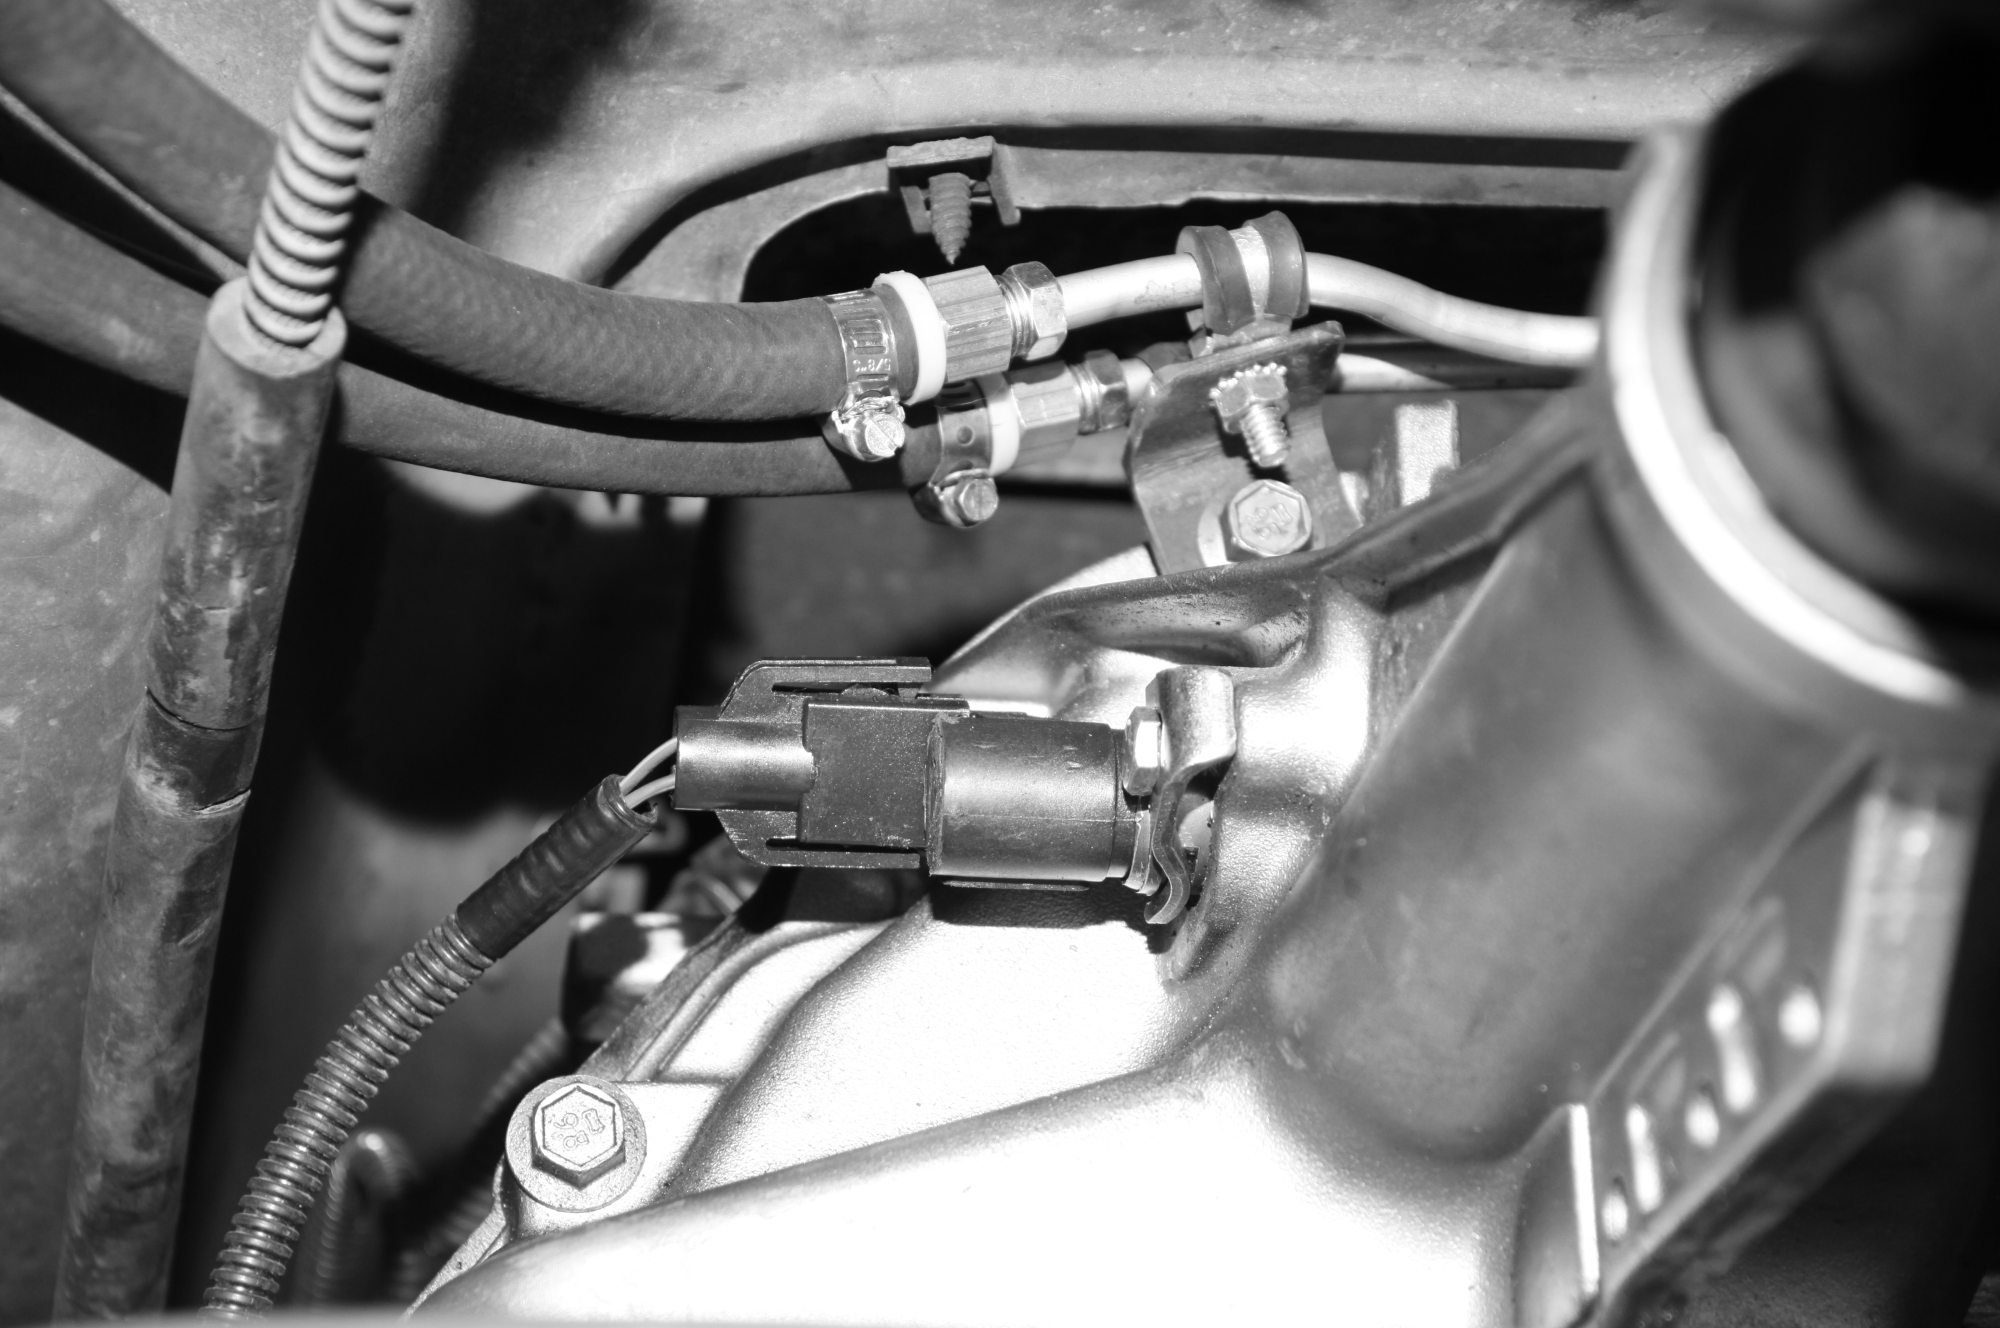 hight resolution of 1973 ford f 350 transmission lines connecting to the transmisison cooler and filter